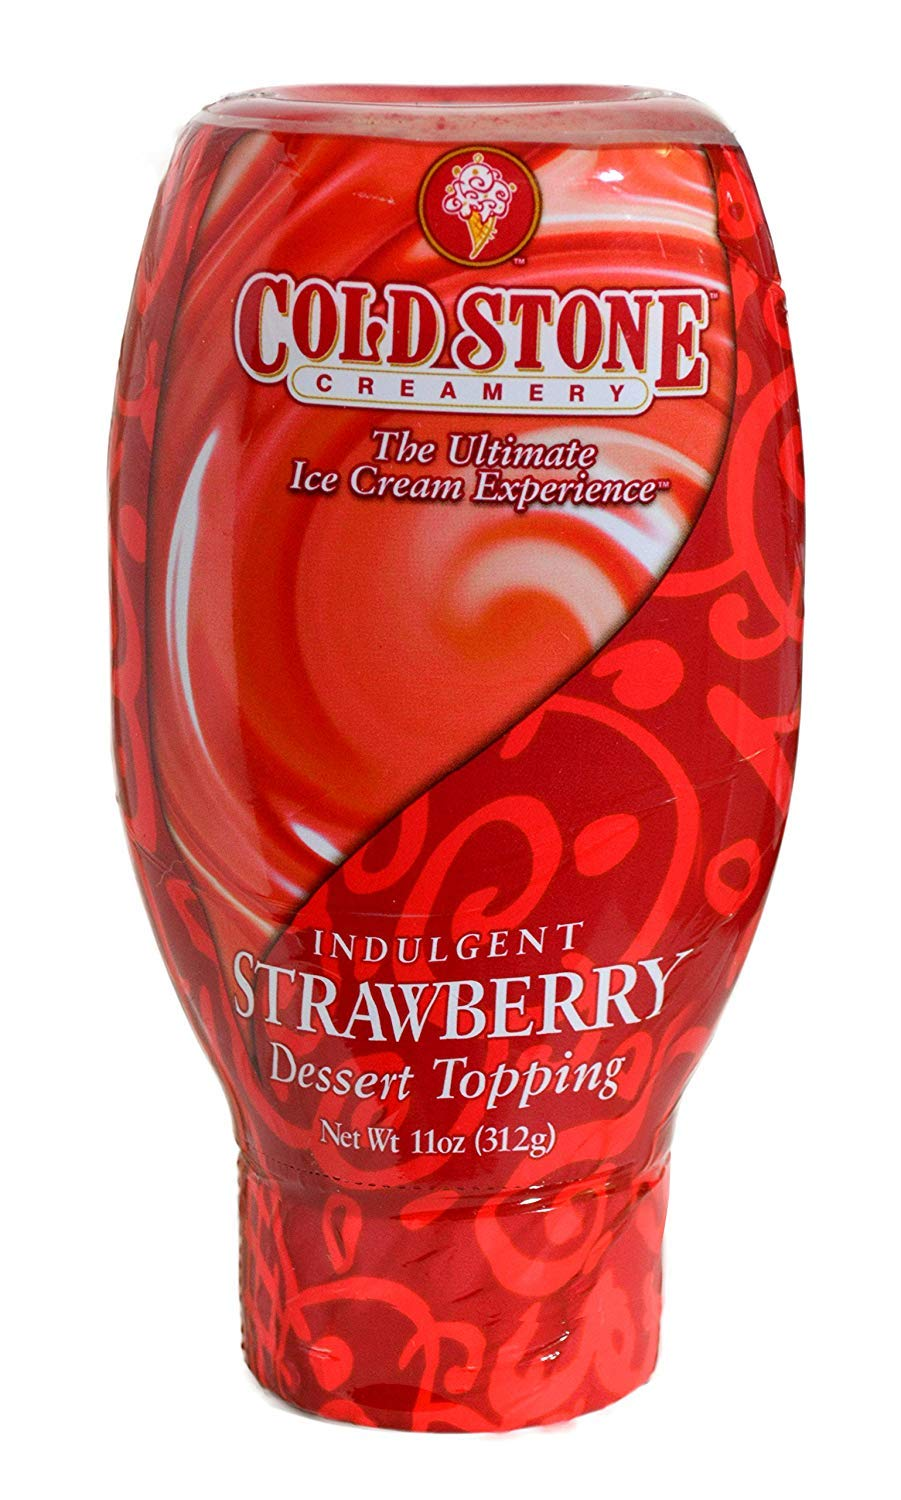 Cold Stone Creamery Sauce, Caramel, Fudge and Strawberry, 11 oz (Variety Pack of 3) by Cold Stane Creamery (Image #3)